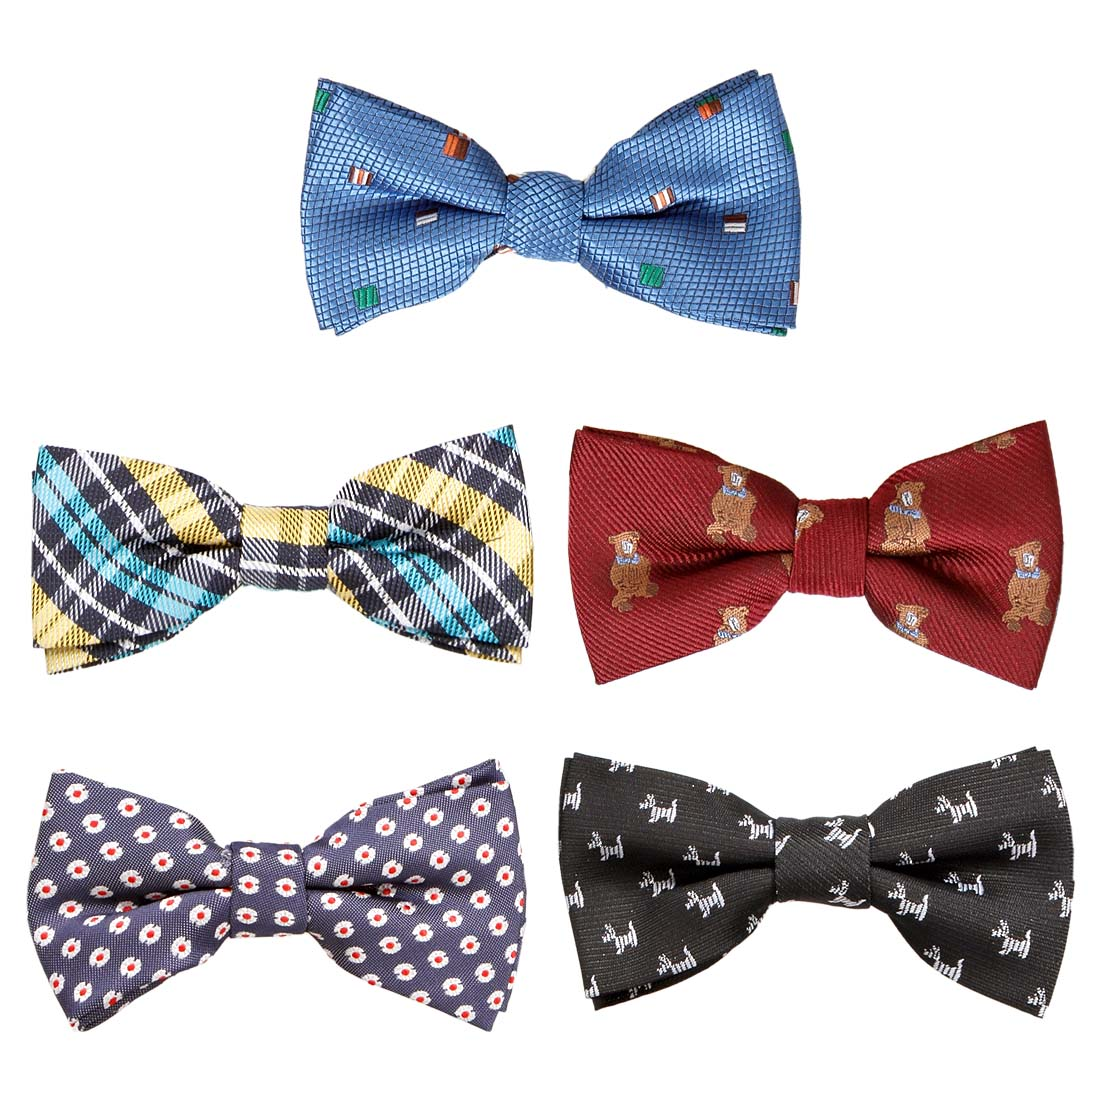 Bundle Monster Stylish 5in1 Adjustable Boys Bow Tie Collection - Various Designs